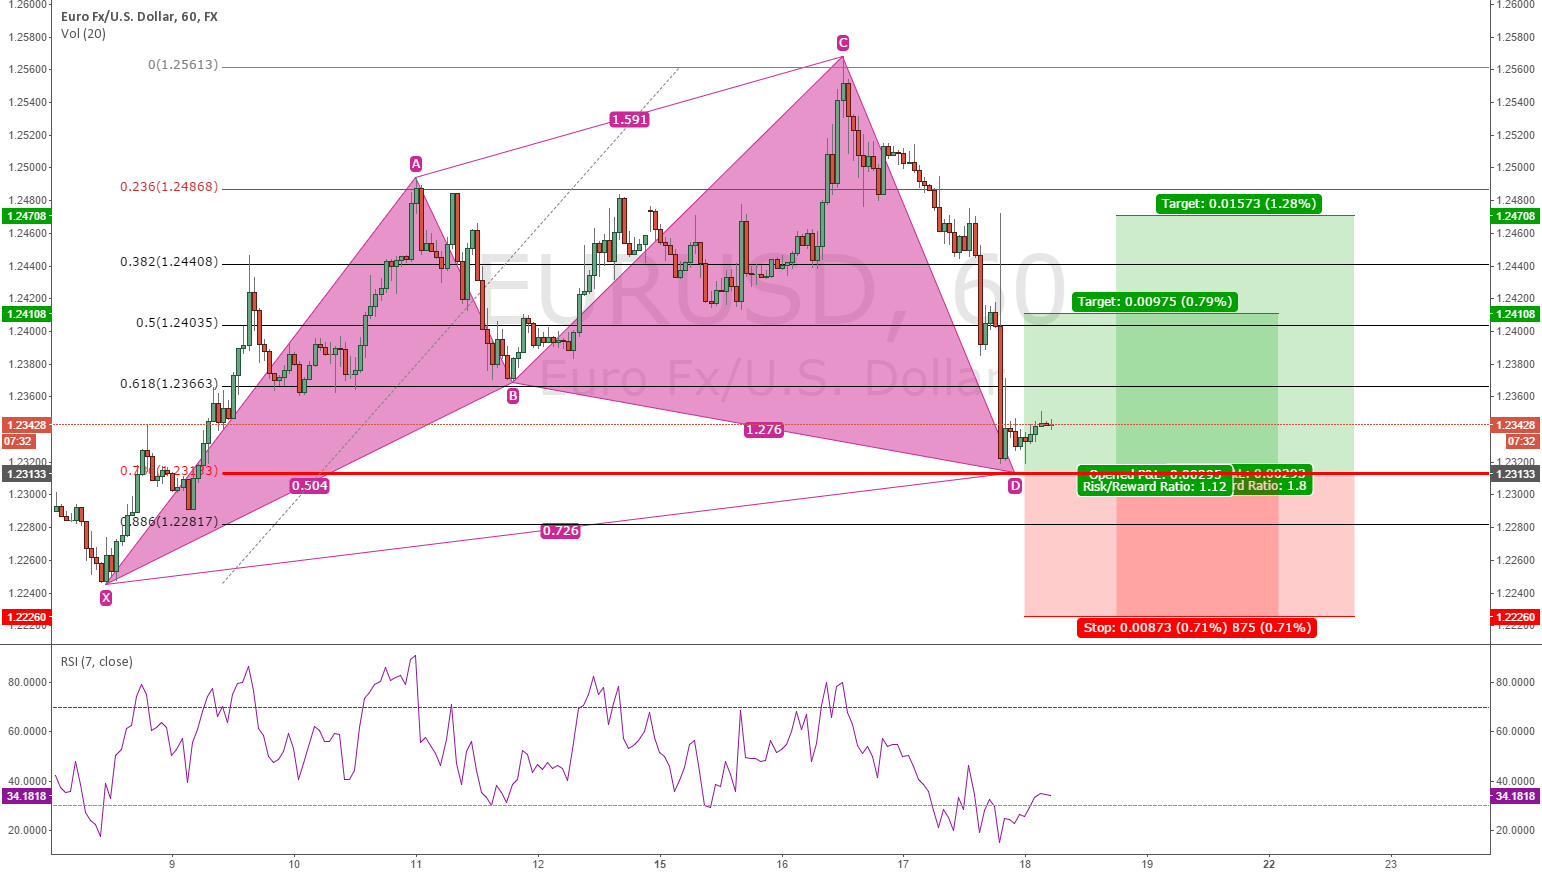 EURUSD: Bullish Cypher pattern almost complete